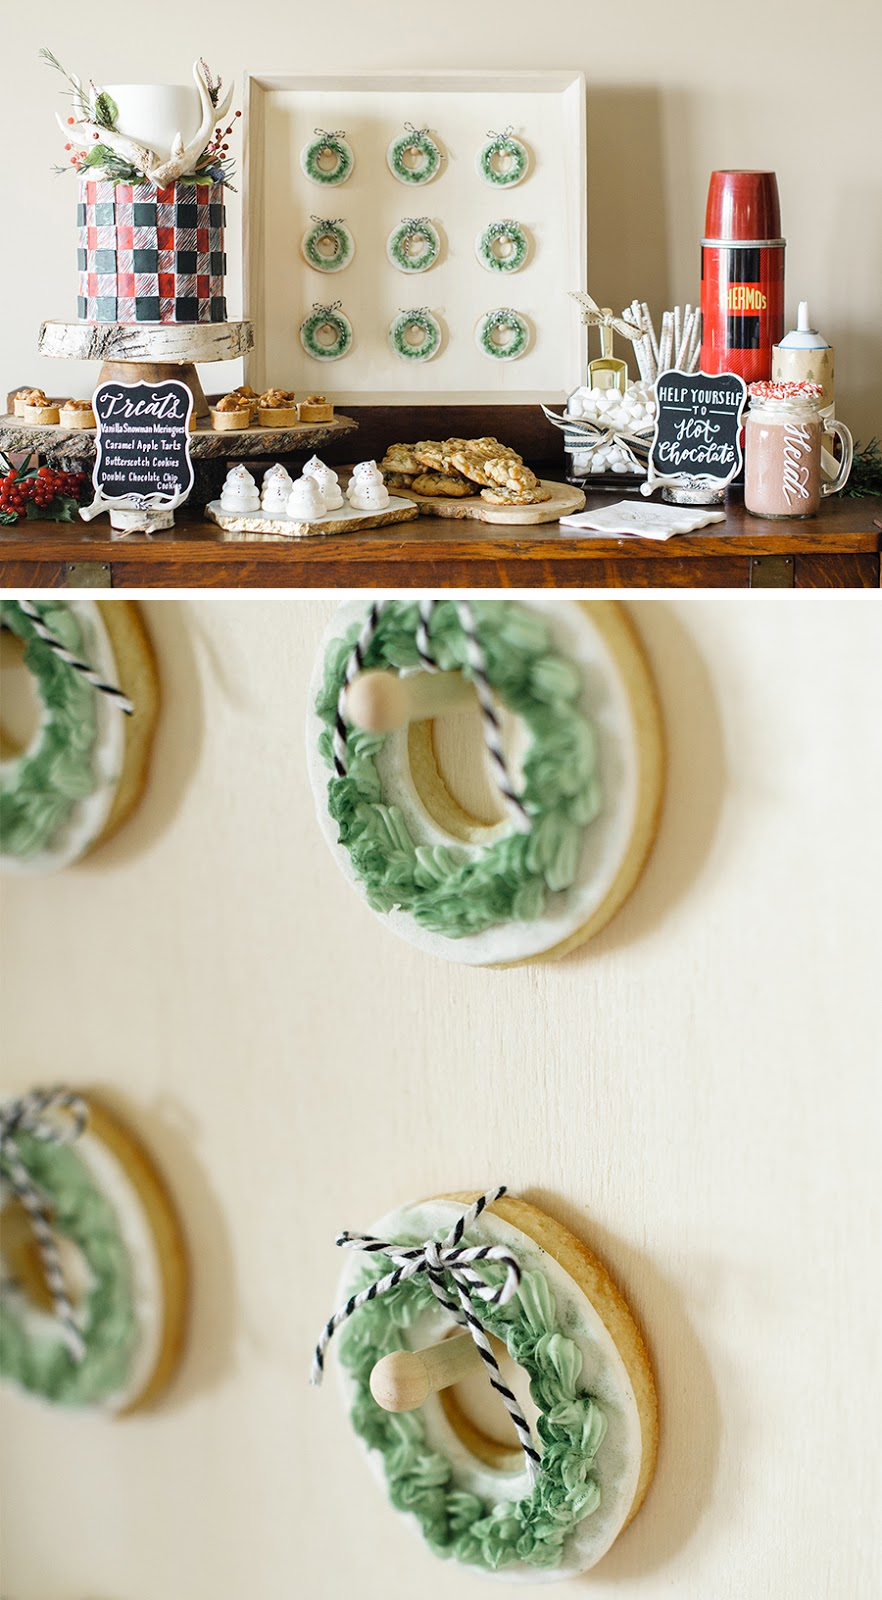 sweet DIY - display board for donuts and cookies | Lorrie Everitt Studio